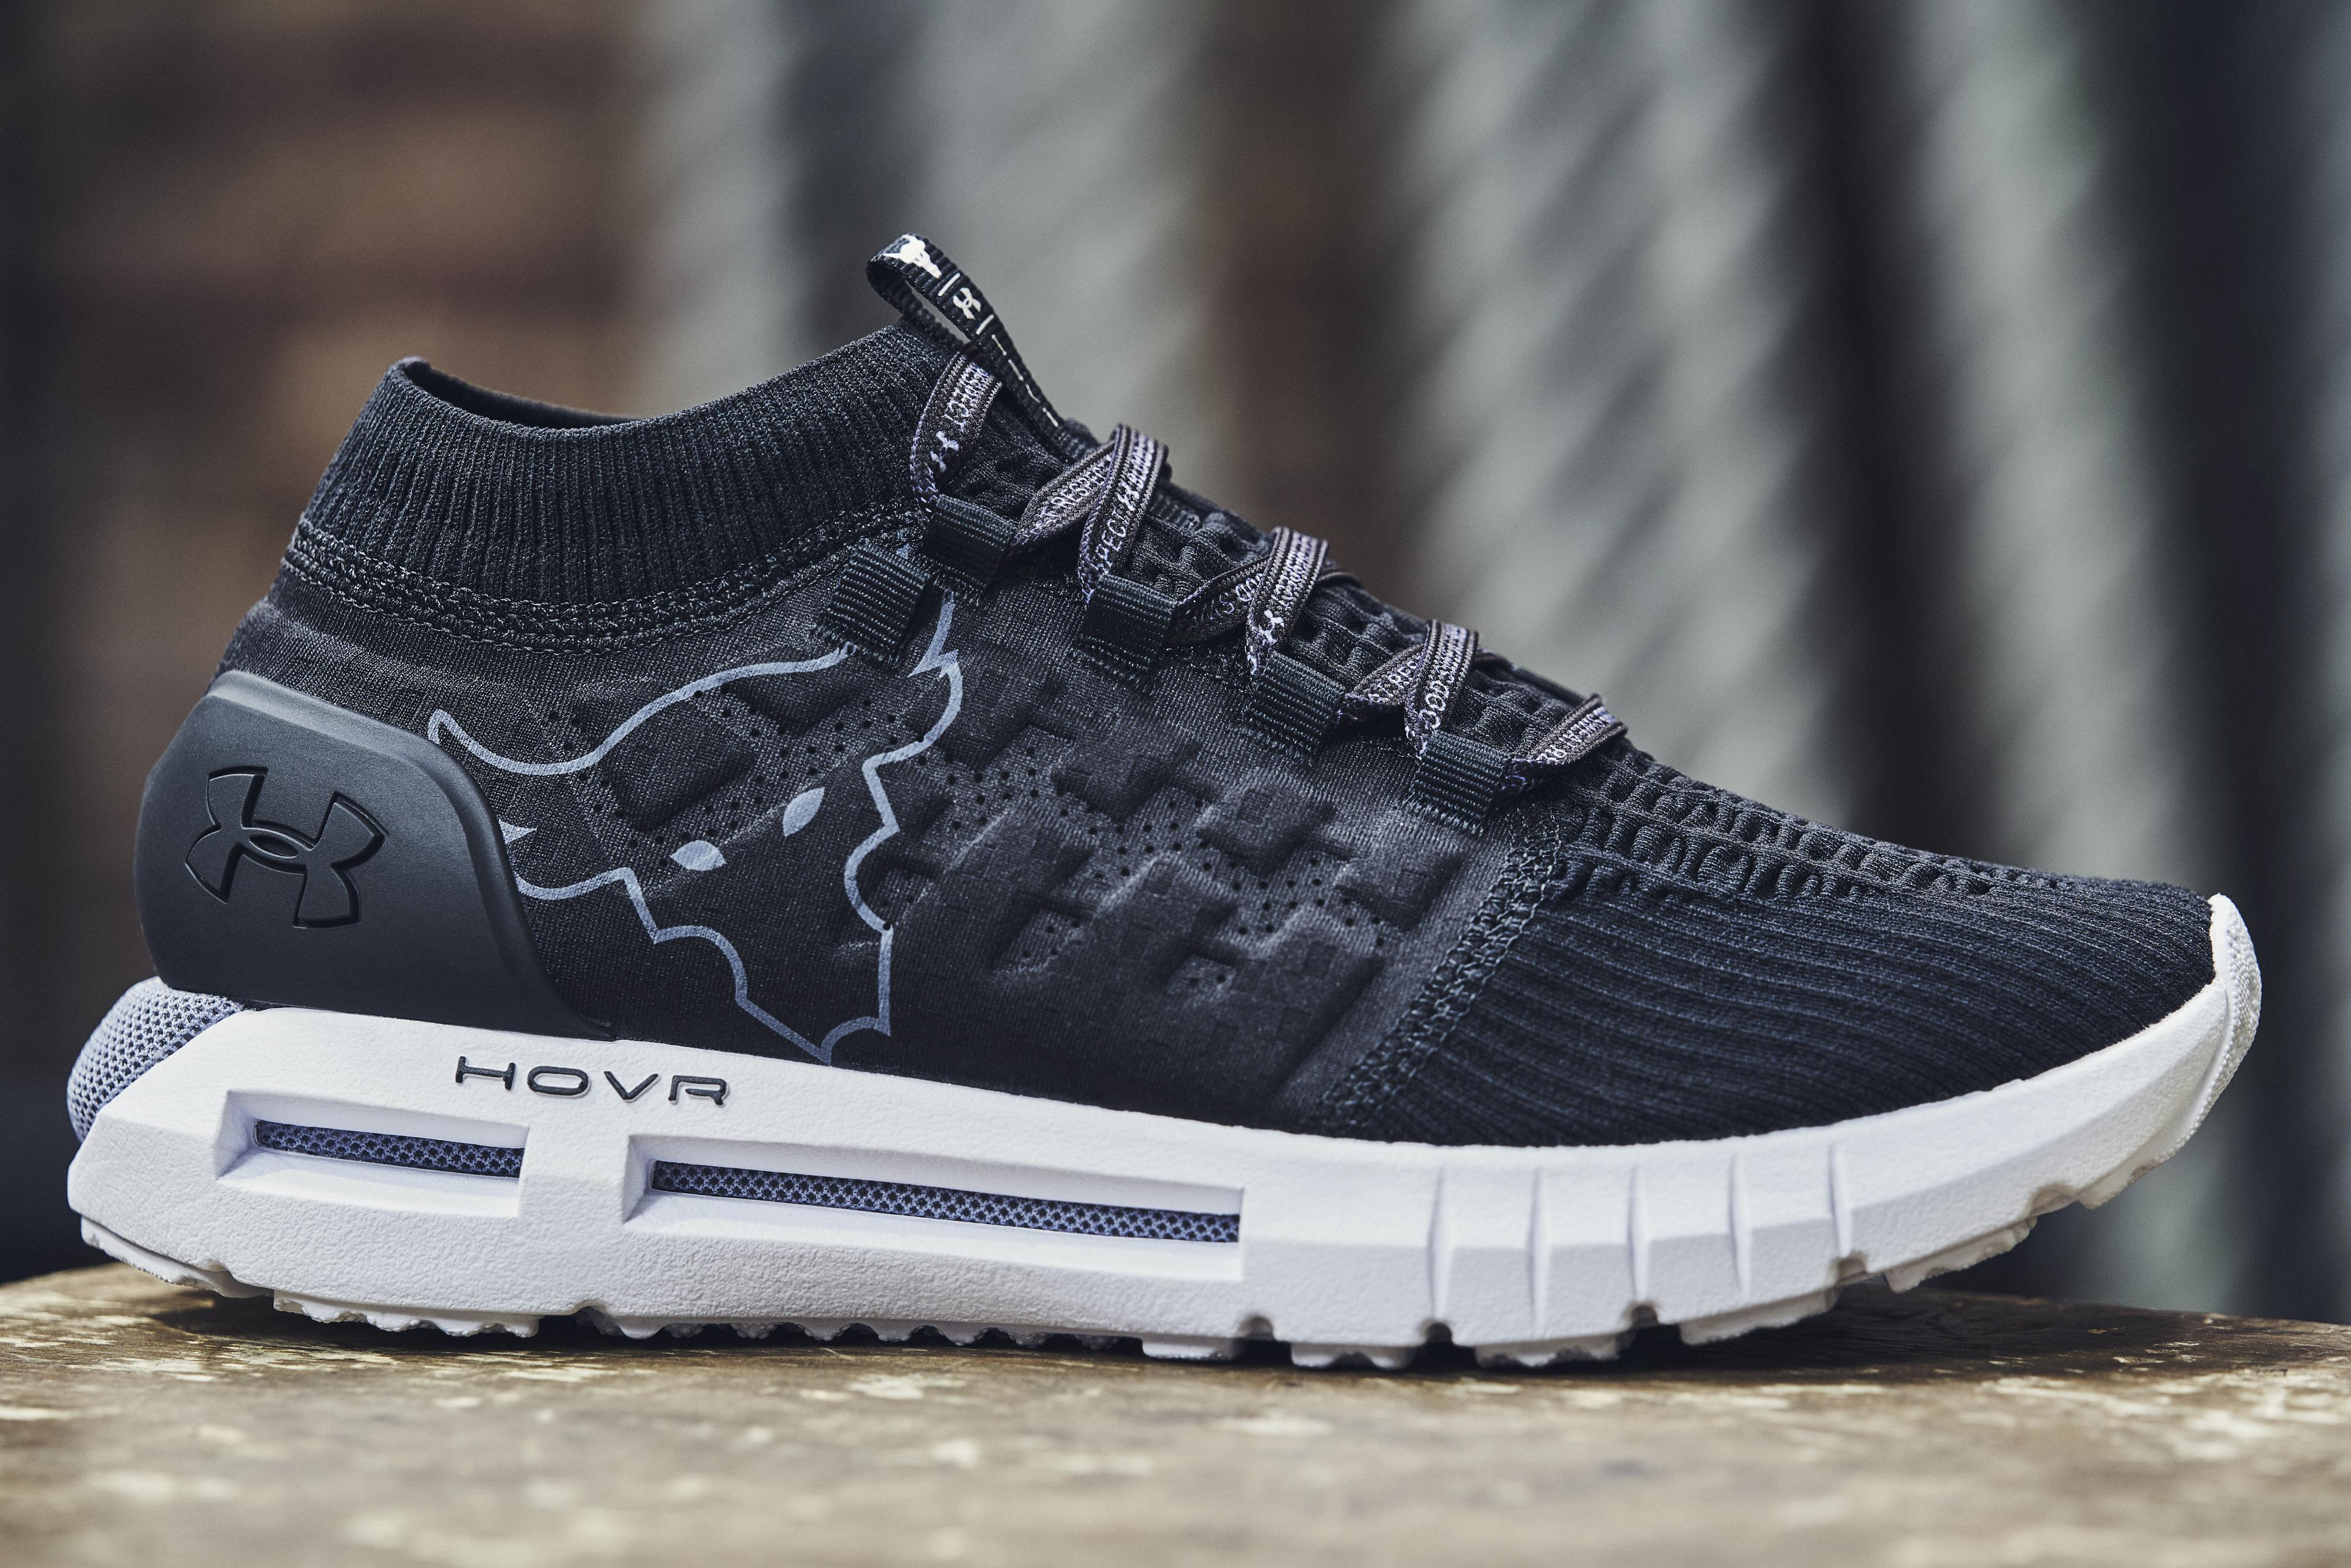 project rock running shoes Cheaper Than